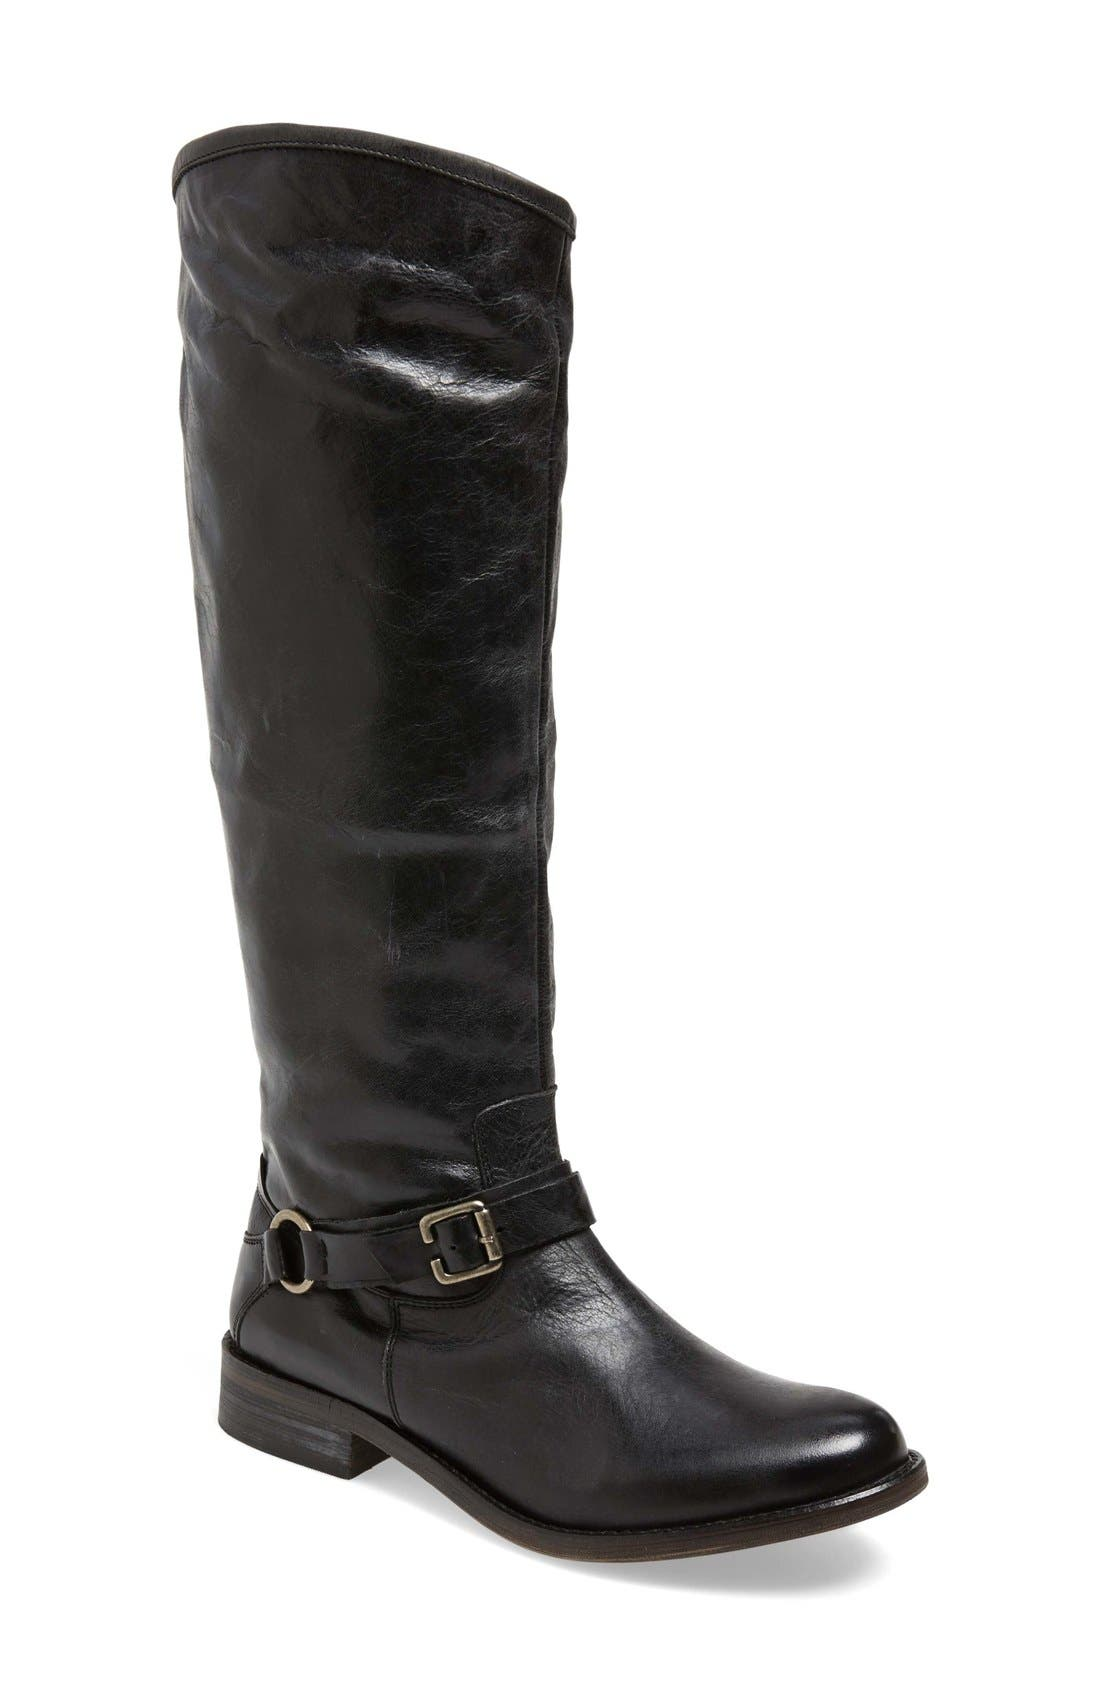 Alternate Image 1 Selected - Hinge 'Dakotah' Knee High Riding Boot (Women)